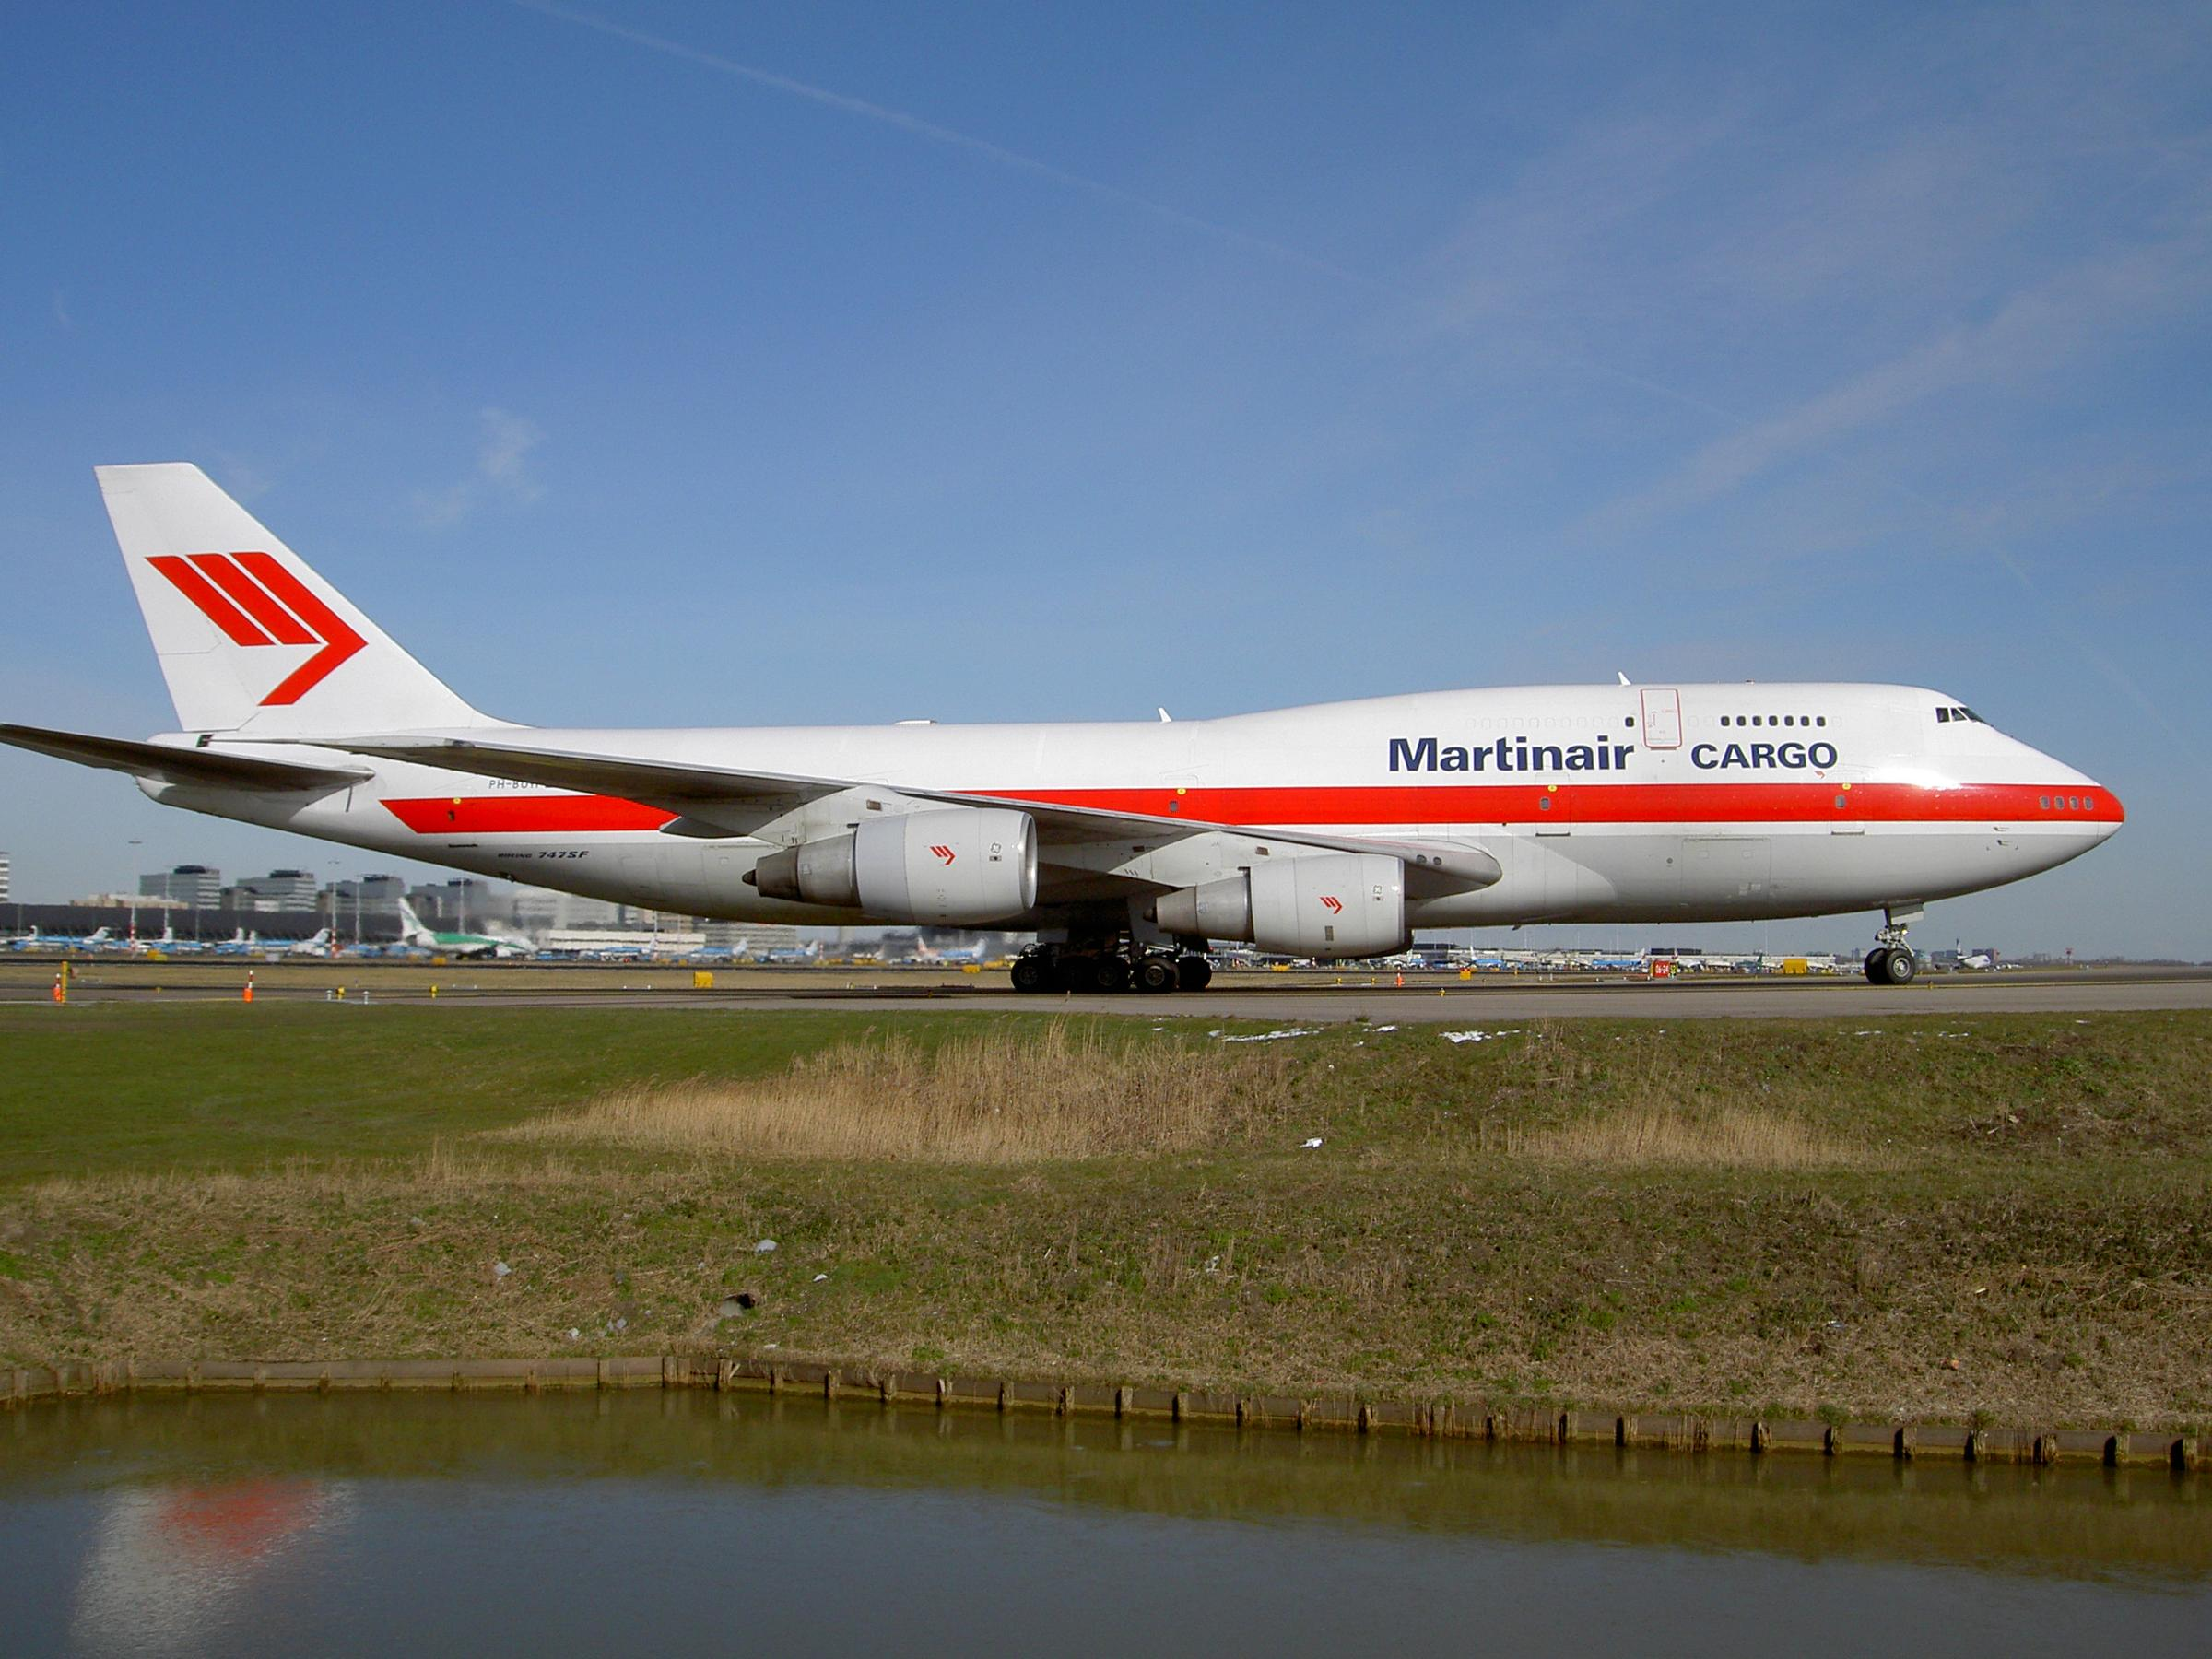 Boeing 747SF Martinair Cargo PH-BUW at Schiphol